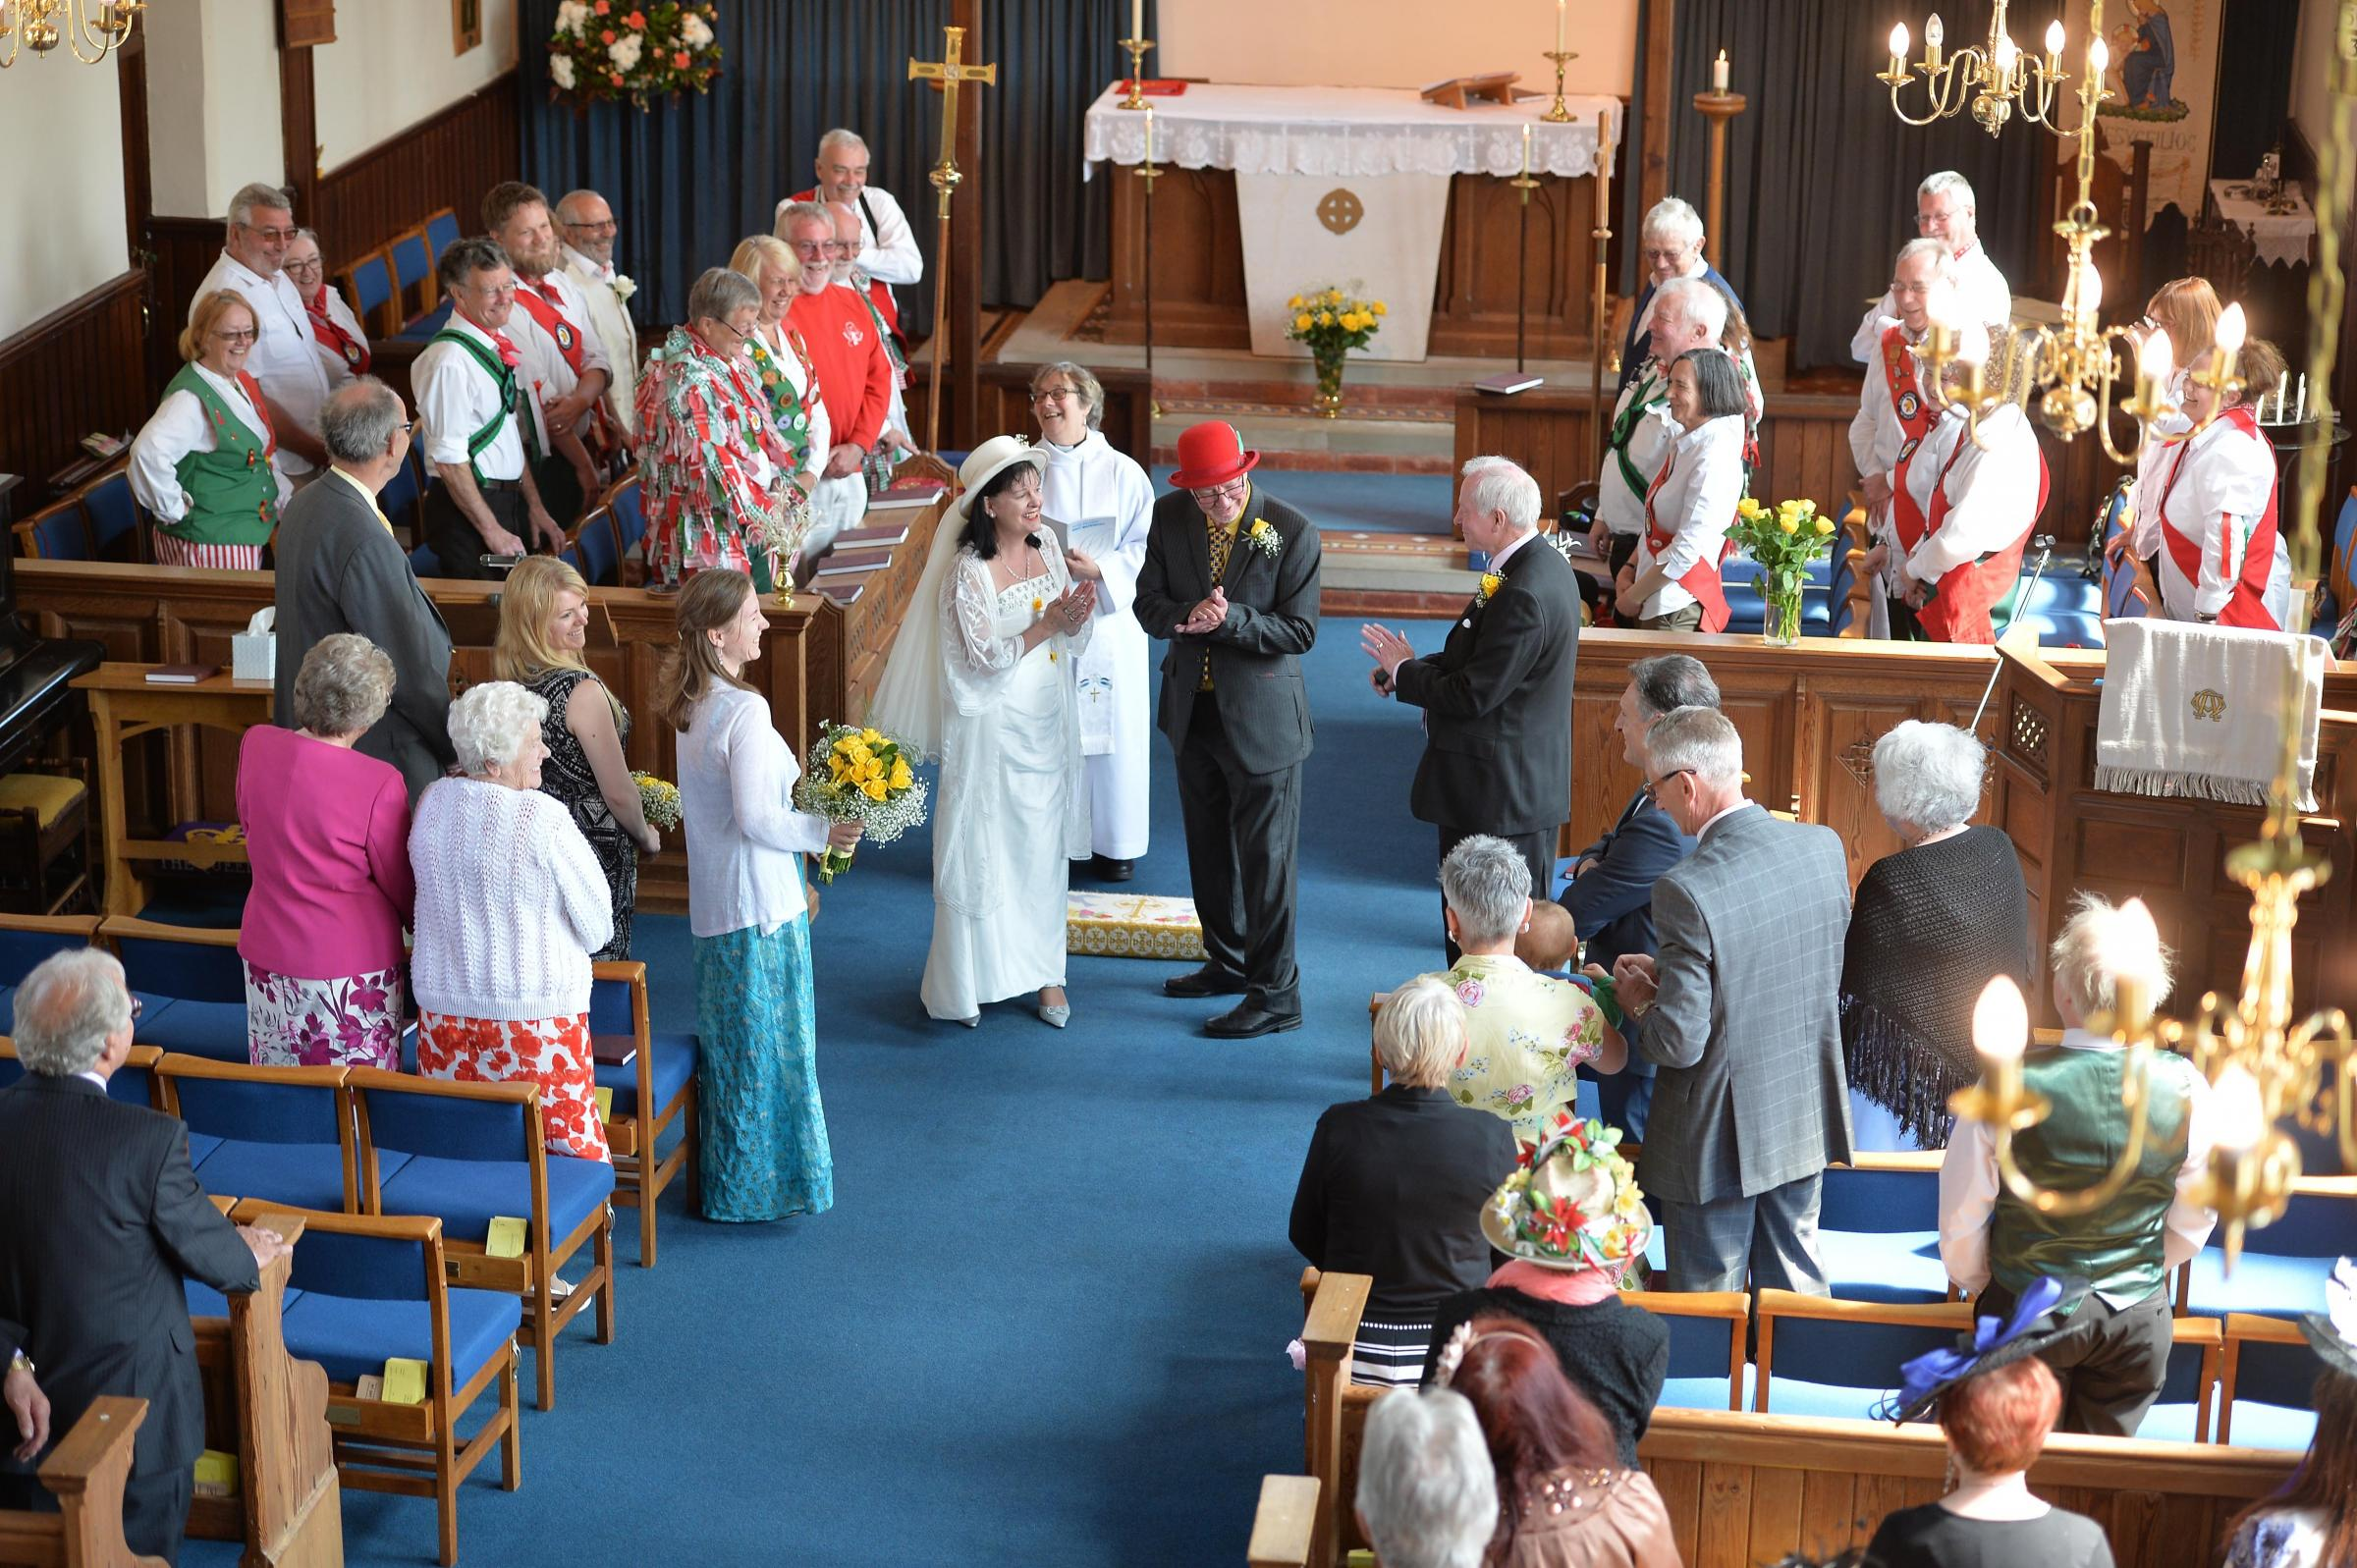 WEDDING: Inside St Mary's Church in Croesyceiliog.